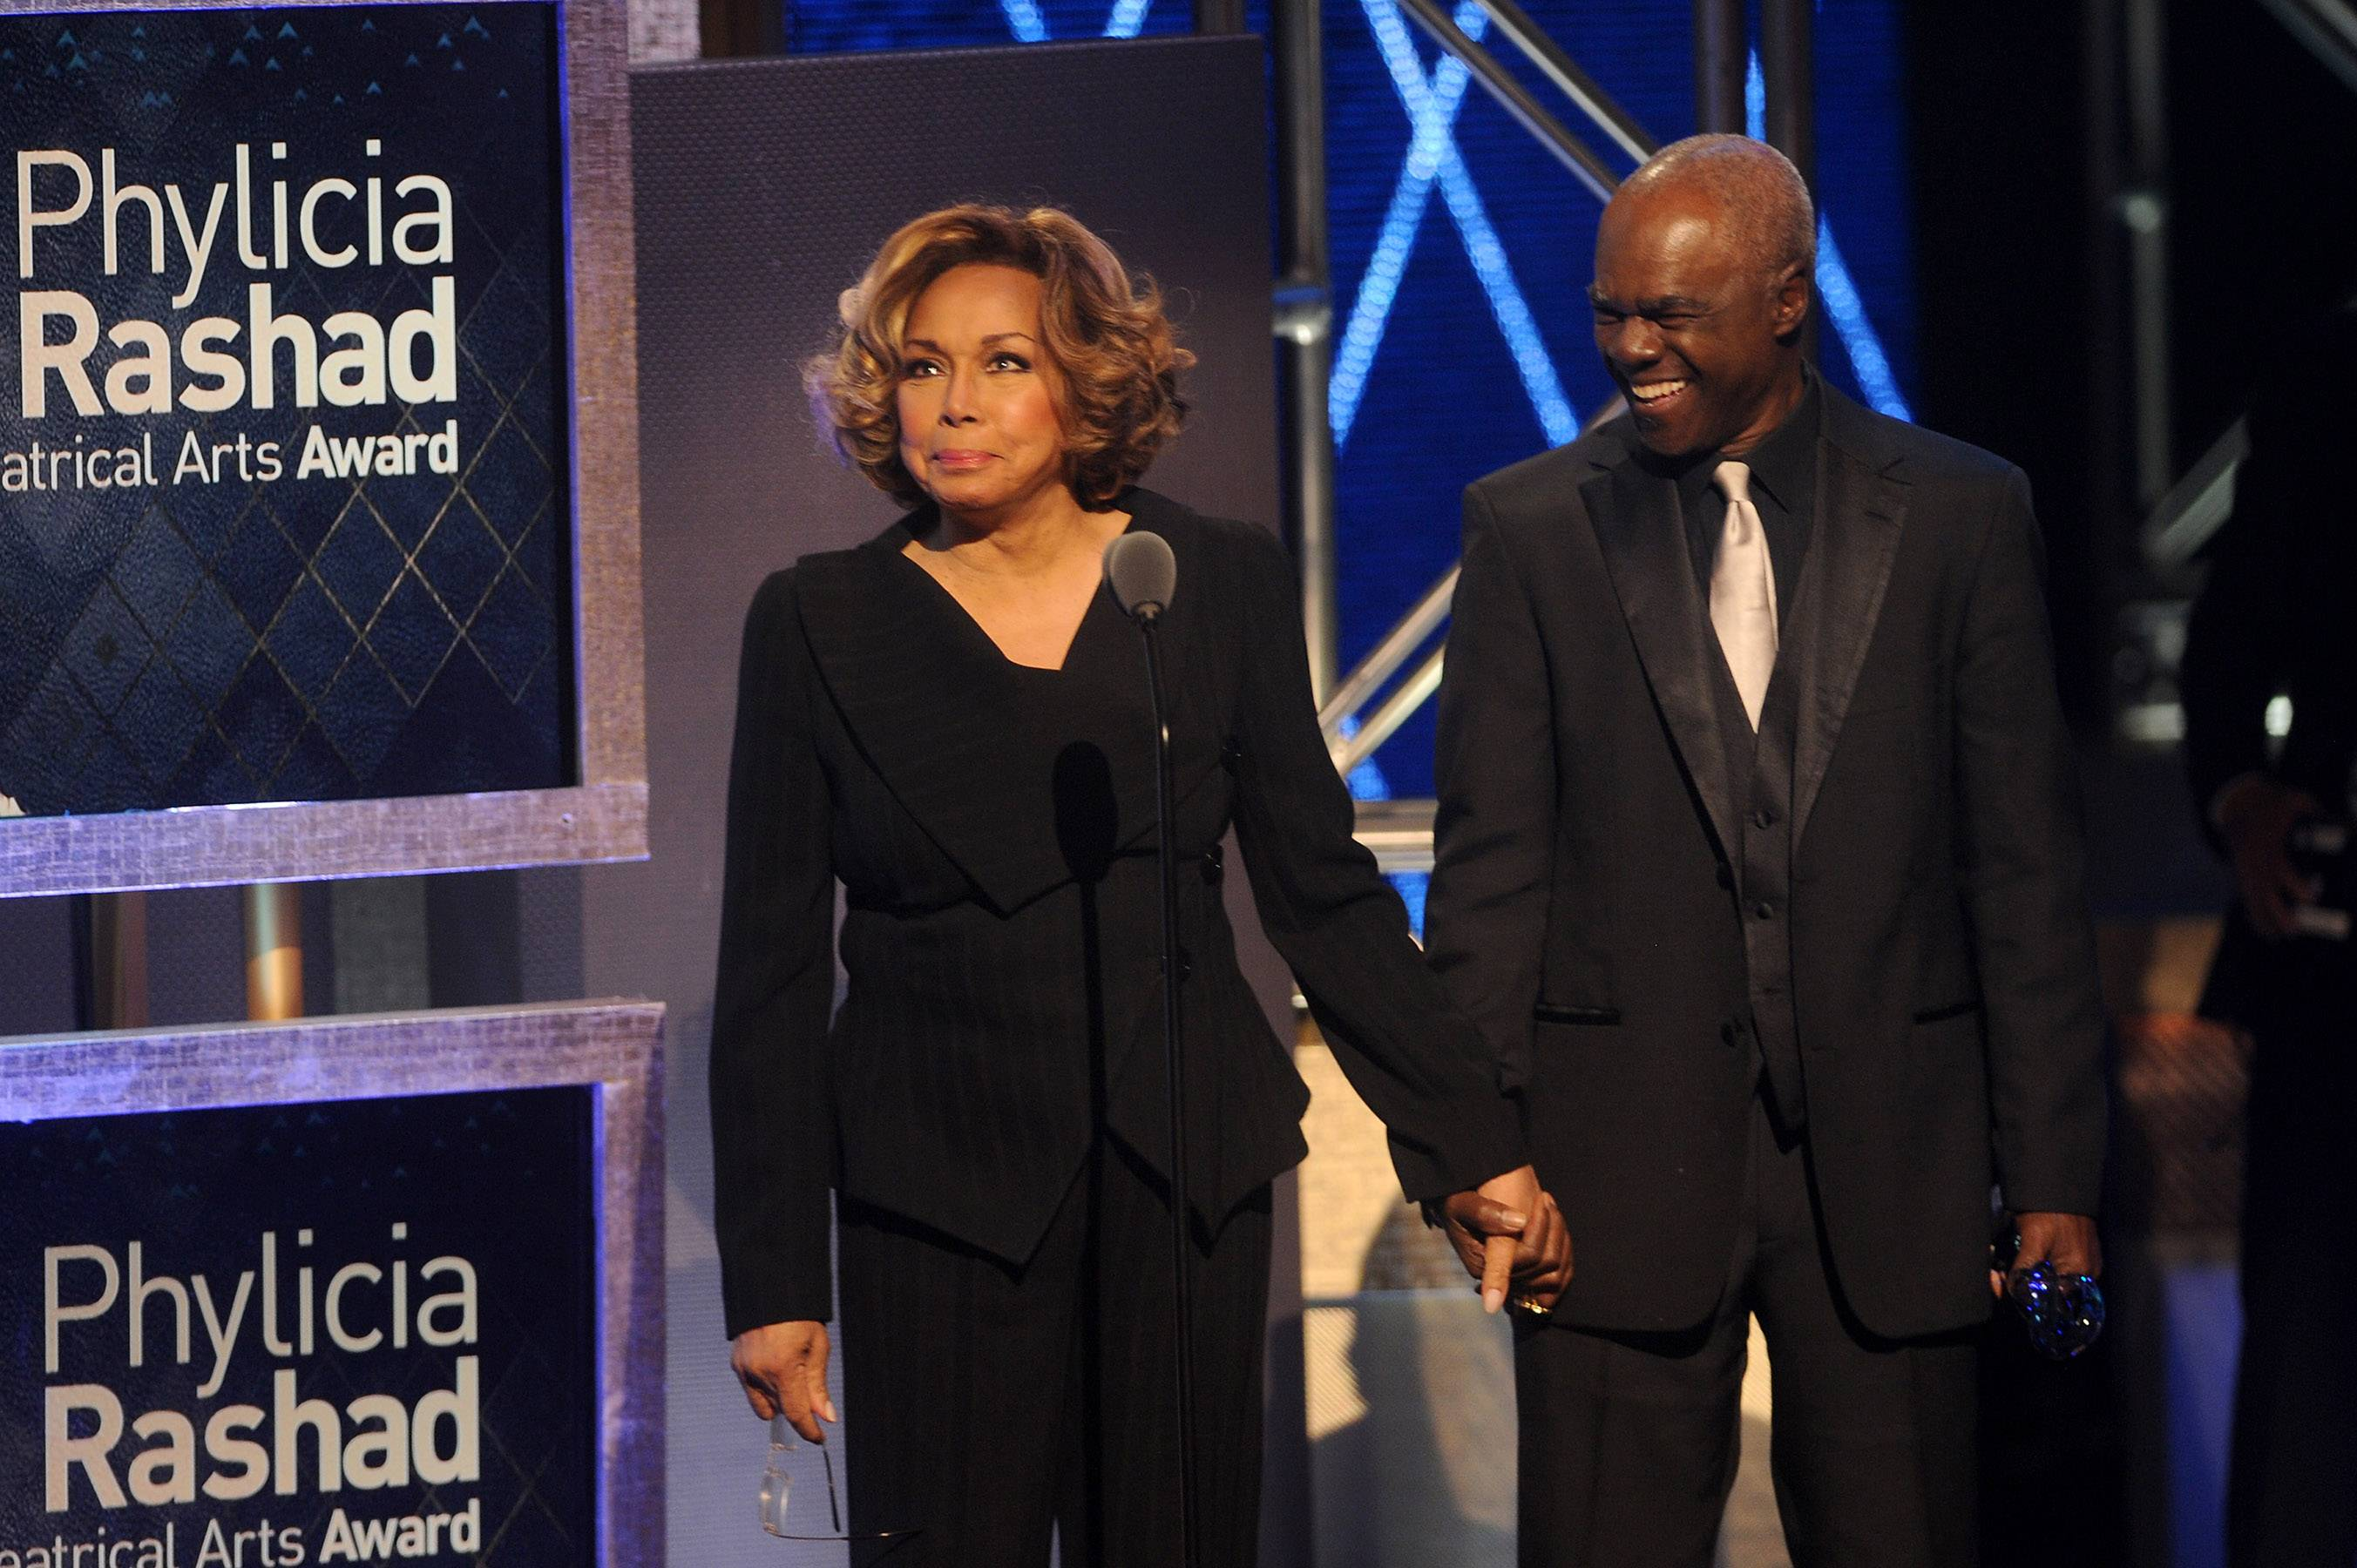 The Dynasty Sign  - Actress Diahann Carroll and actor Glynn Turman speak on the grace and appreciation felt by the roles Phylicia Rashad has played throughout her career. (Photo: Brad Barket/BET/Getty Images for BET)